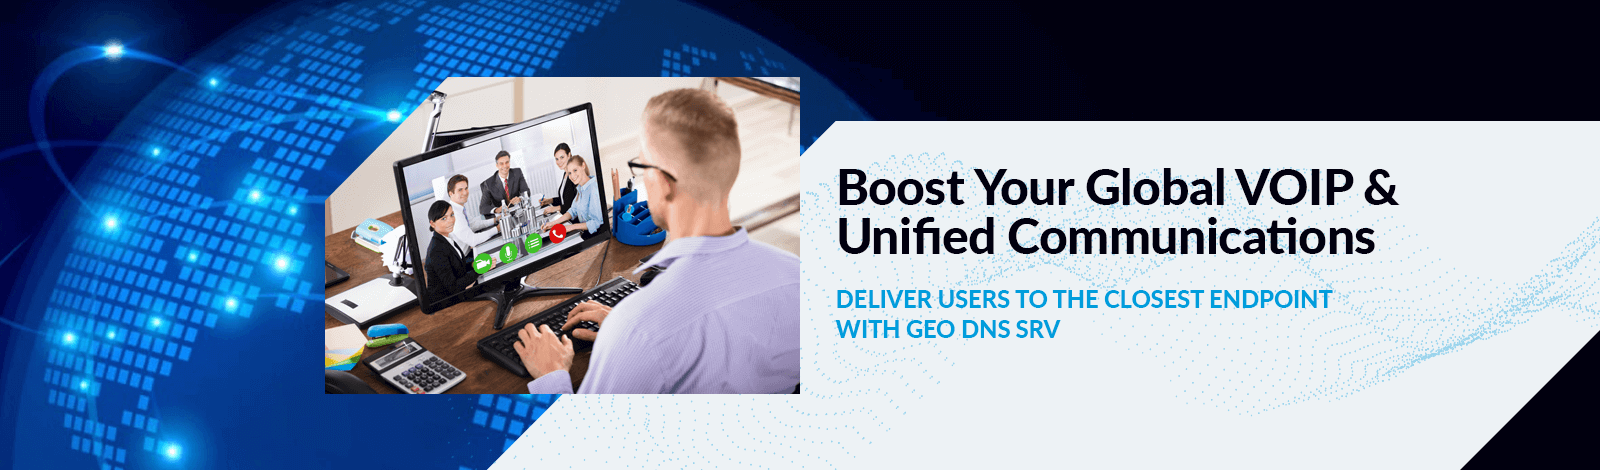 GEO DNS SRV for Unified Communications